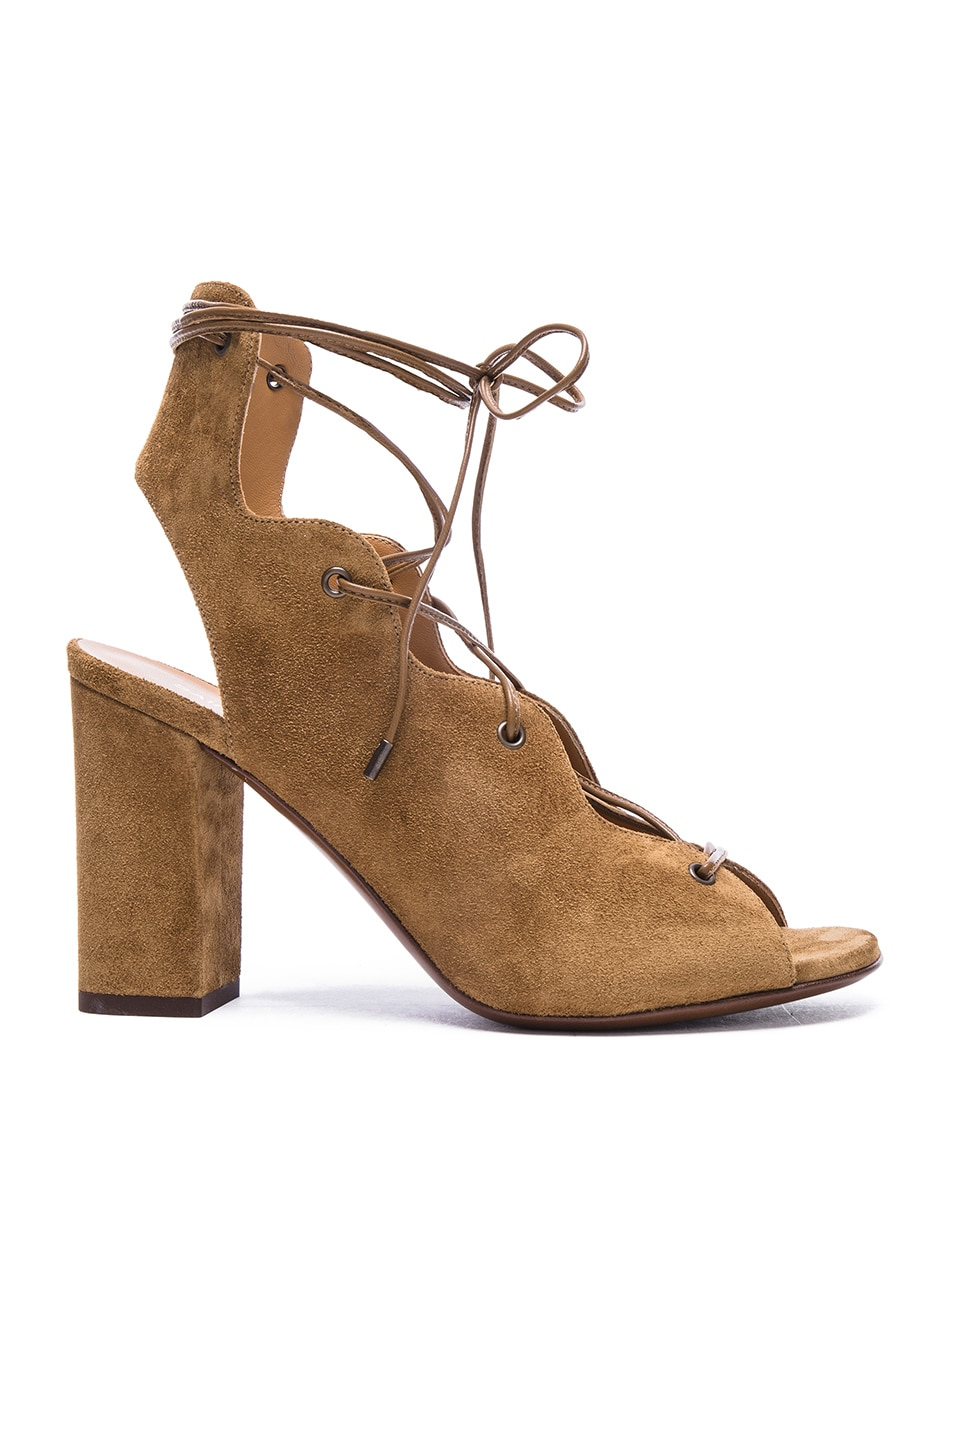 Image 1 of Saint Laurent Babies Suede Lace Up Heel Sandals in Tan